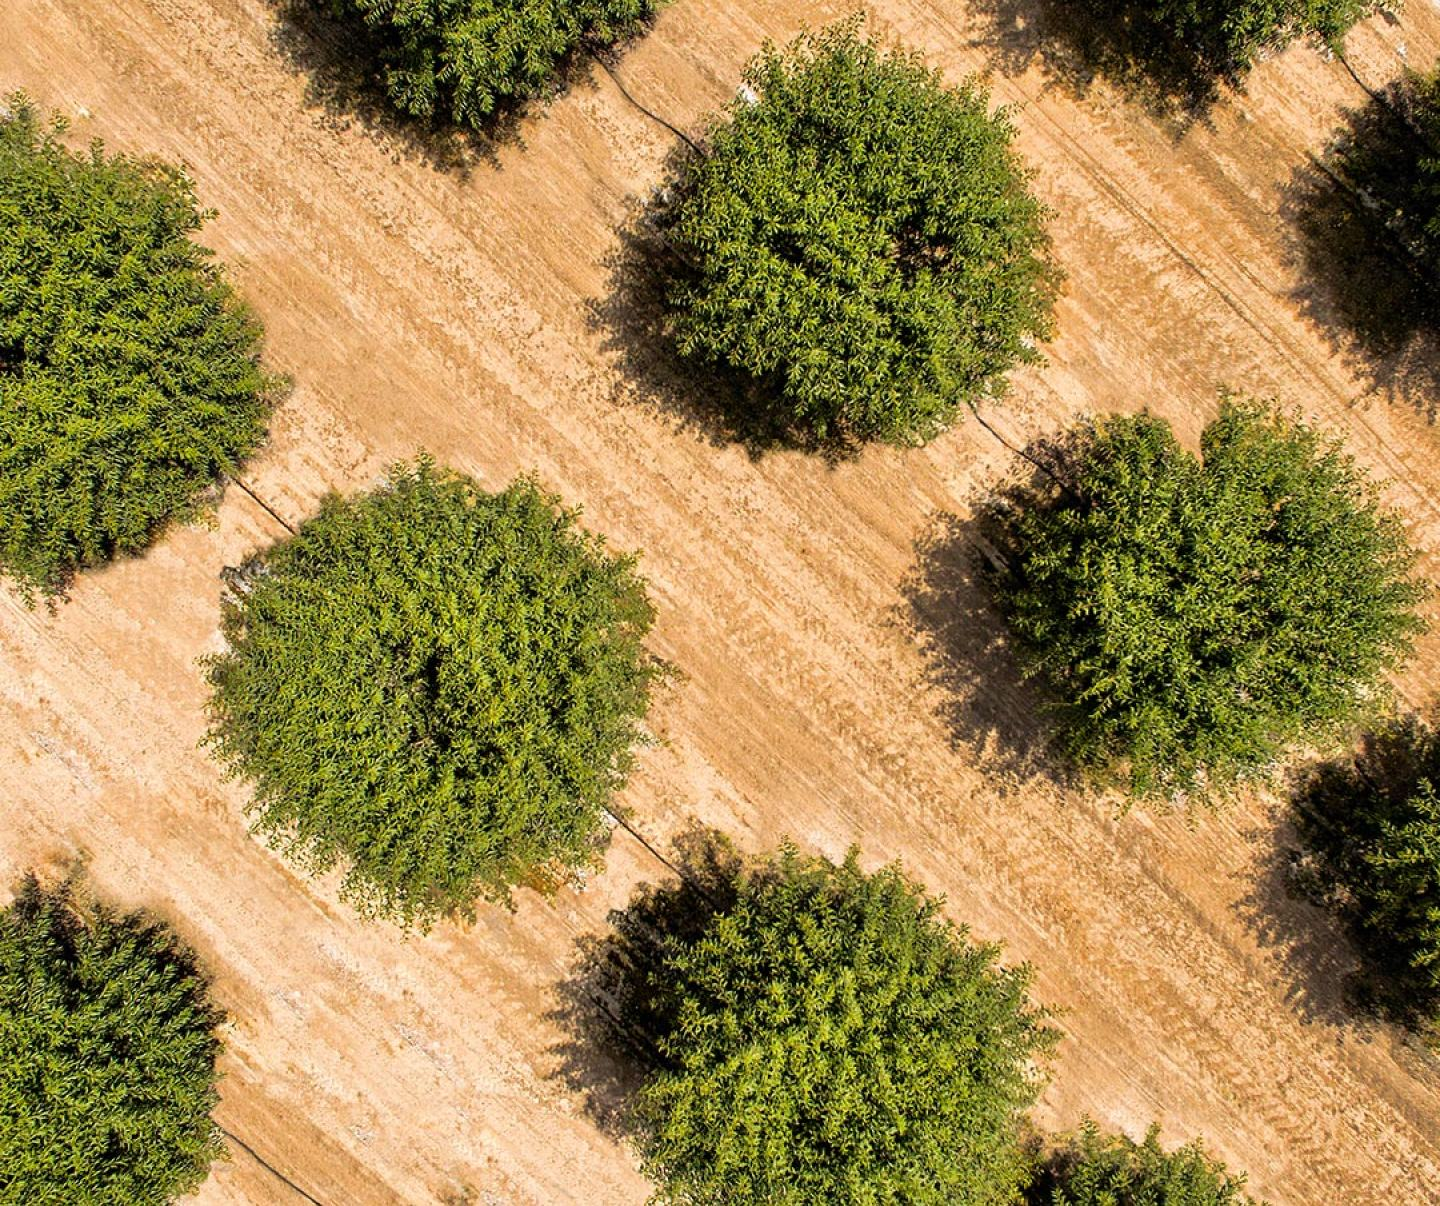 Aerial of almond trees in field